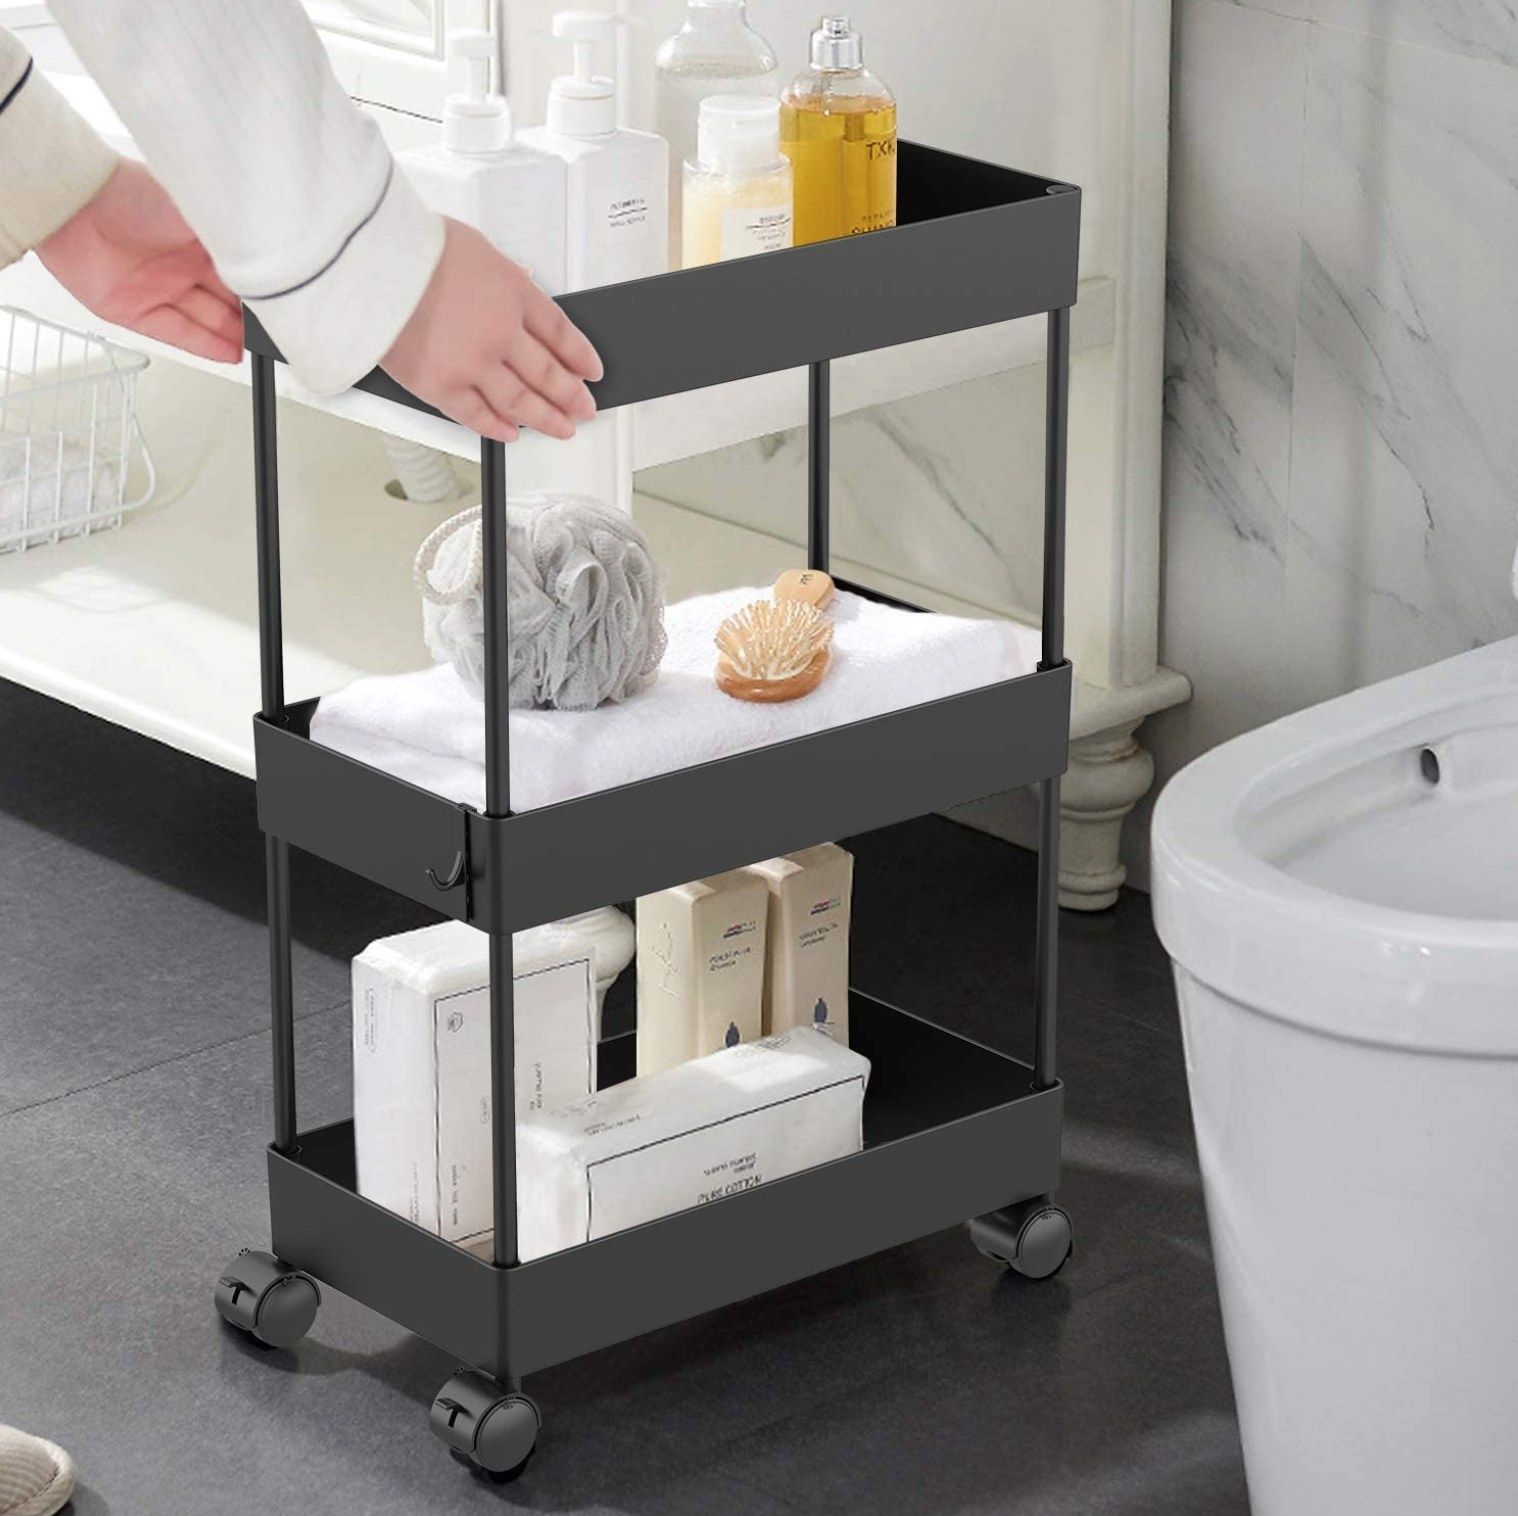 The cart with different bathroom products on it